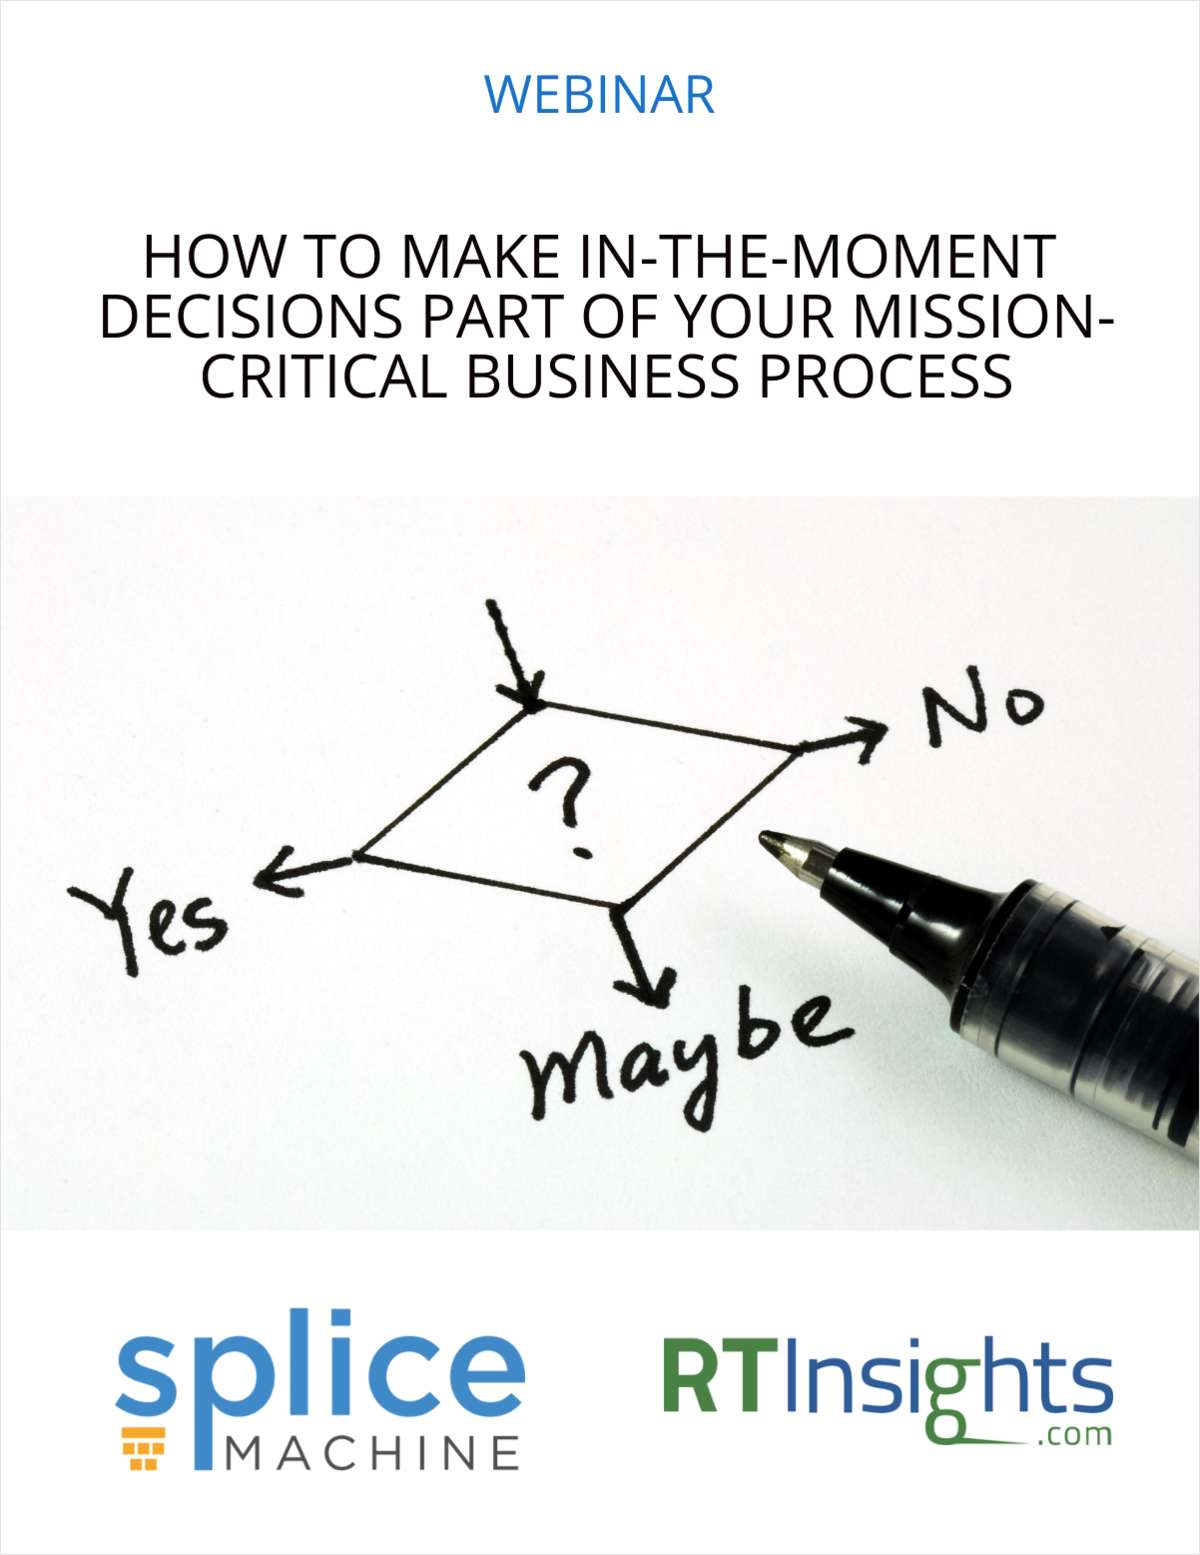 How to Make In-The-Moment Decisions Part of Your Mission-Critical Business Process